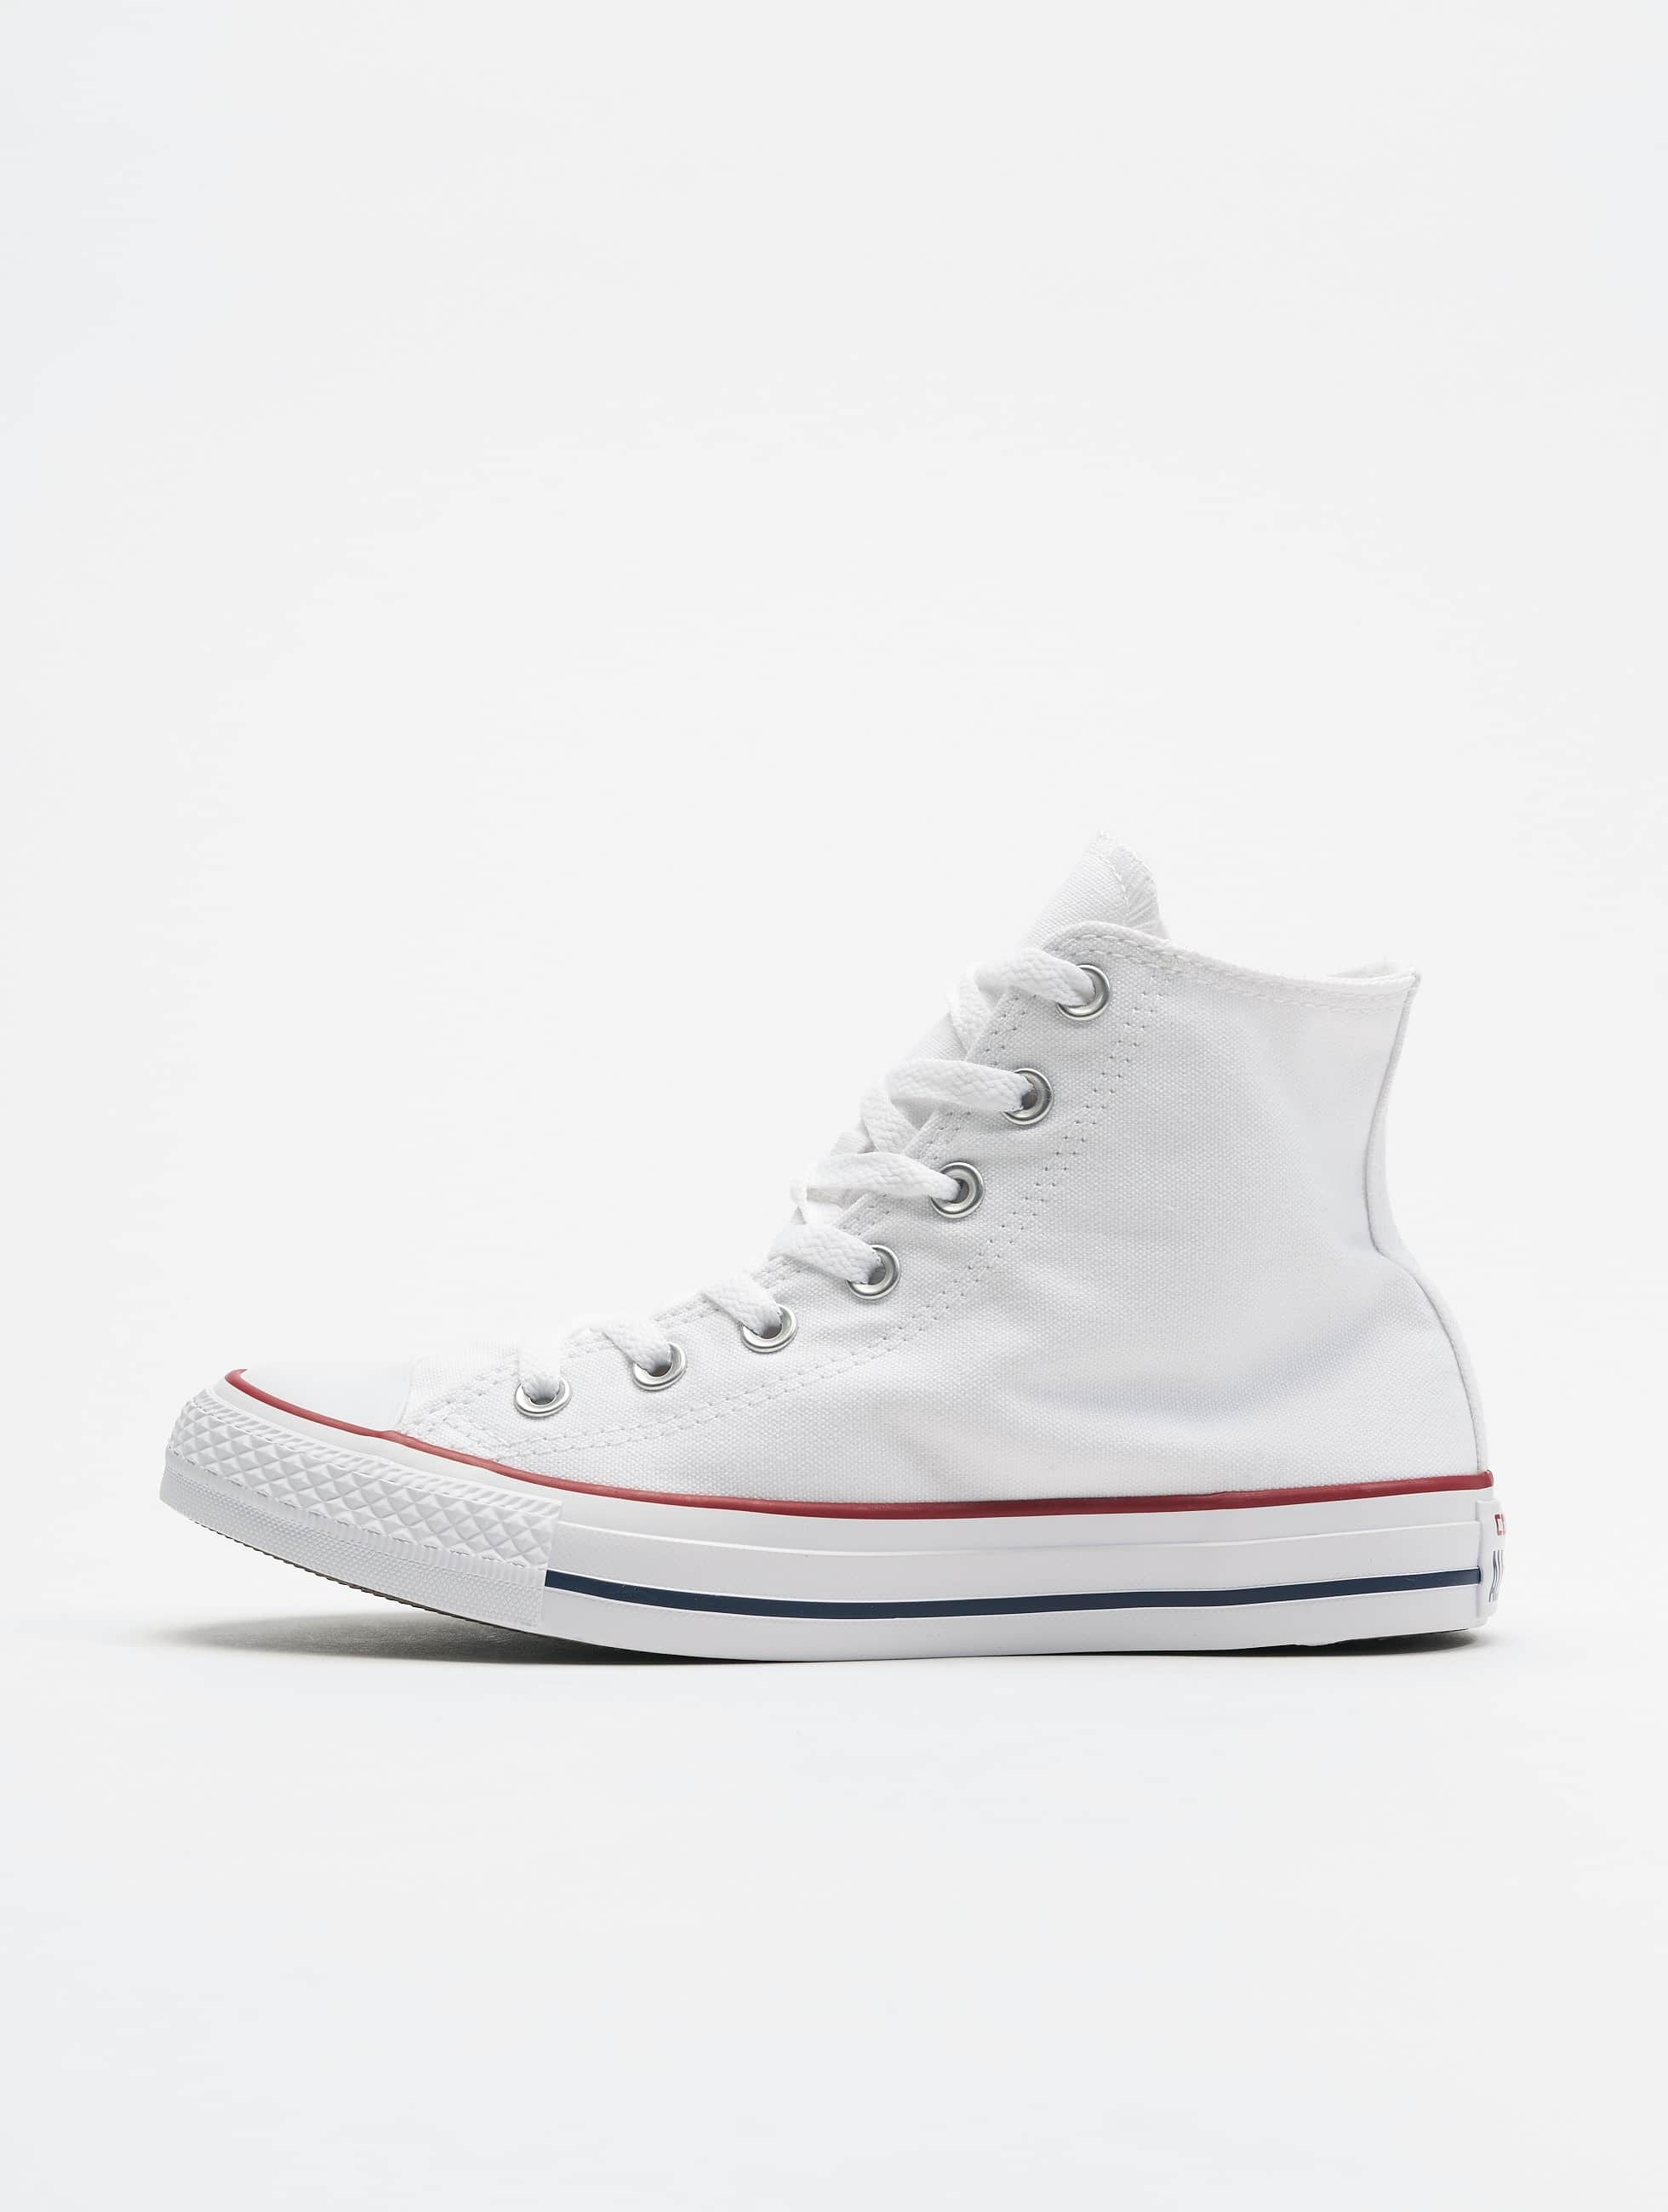 d0f8ca3479007 ... coupon code for converse zapatillas de deporte chuck taylor all star  blanco 54bb7 30ac0